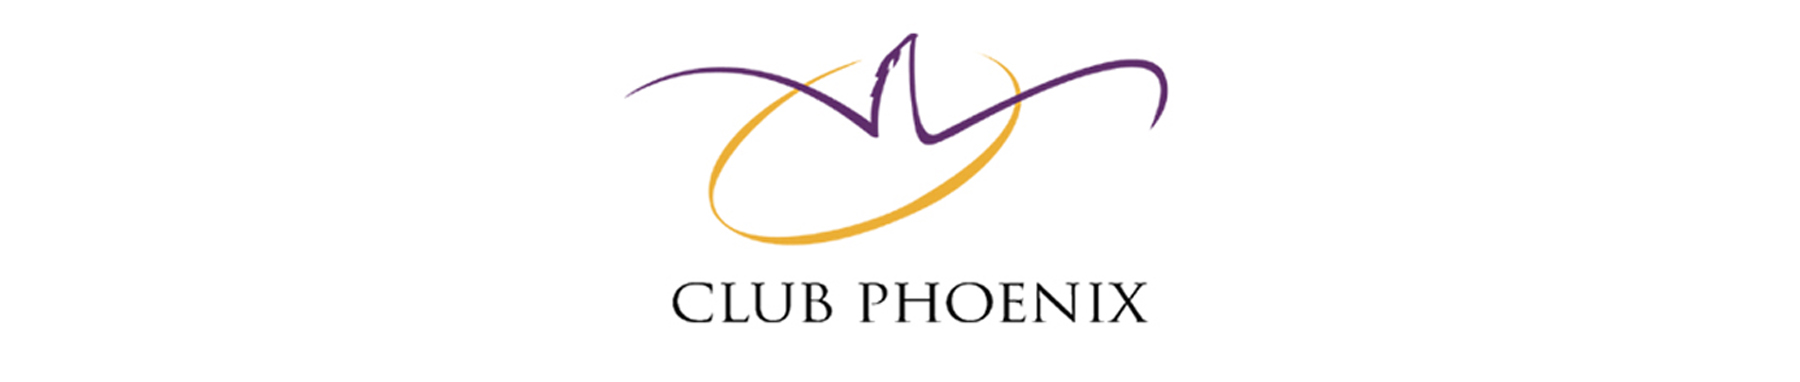 Club Phoenix banner on white background